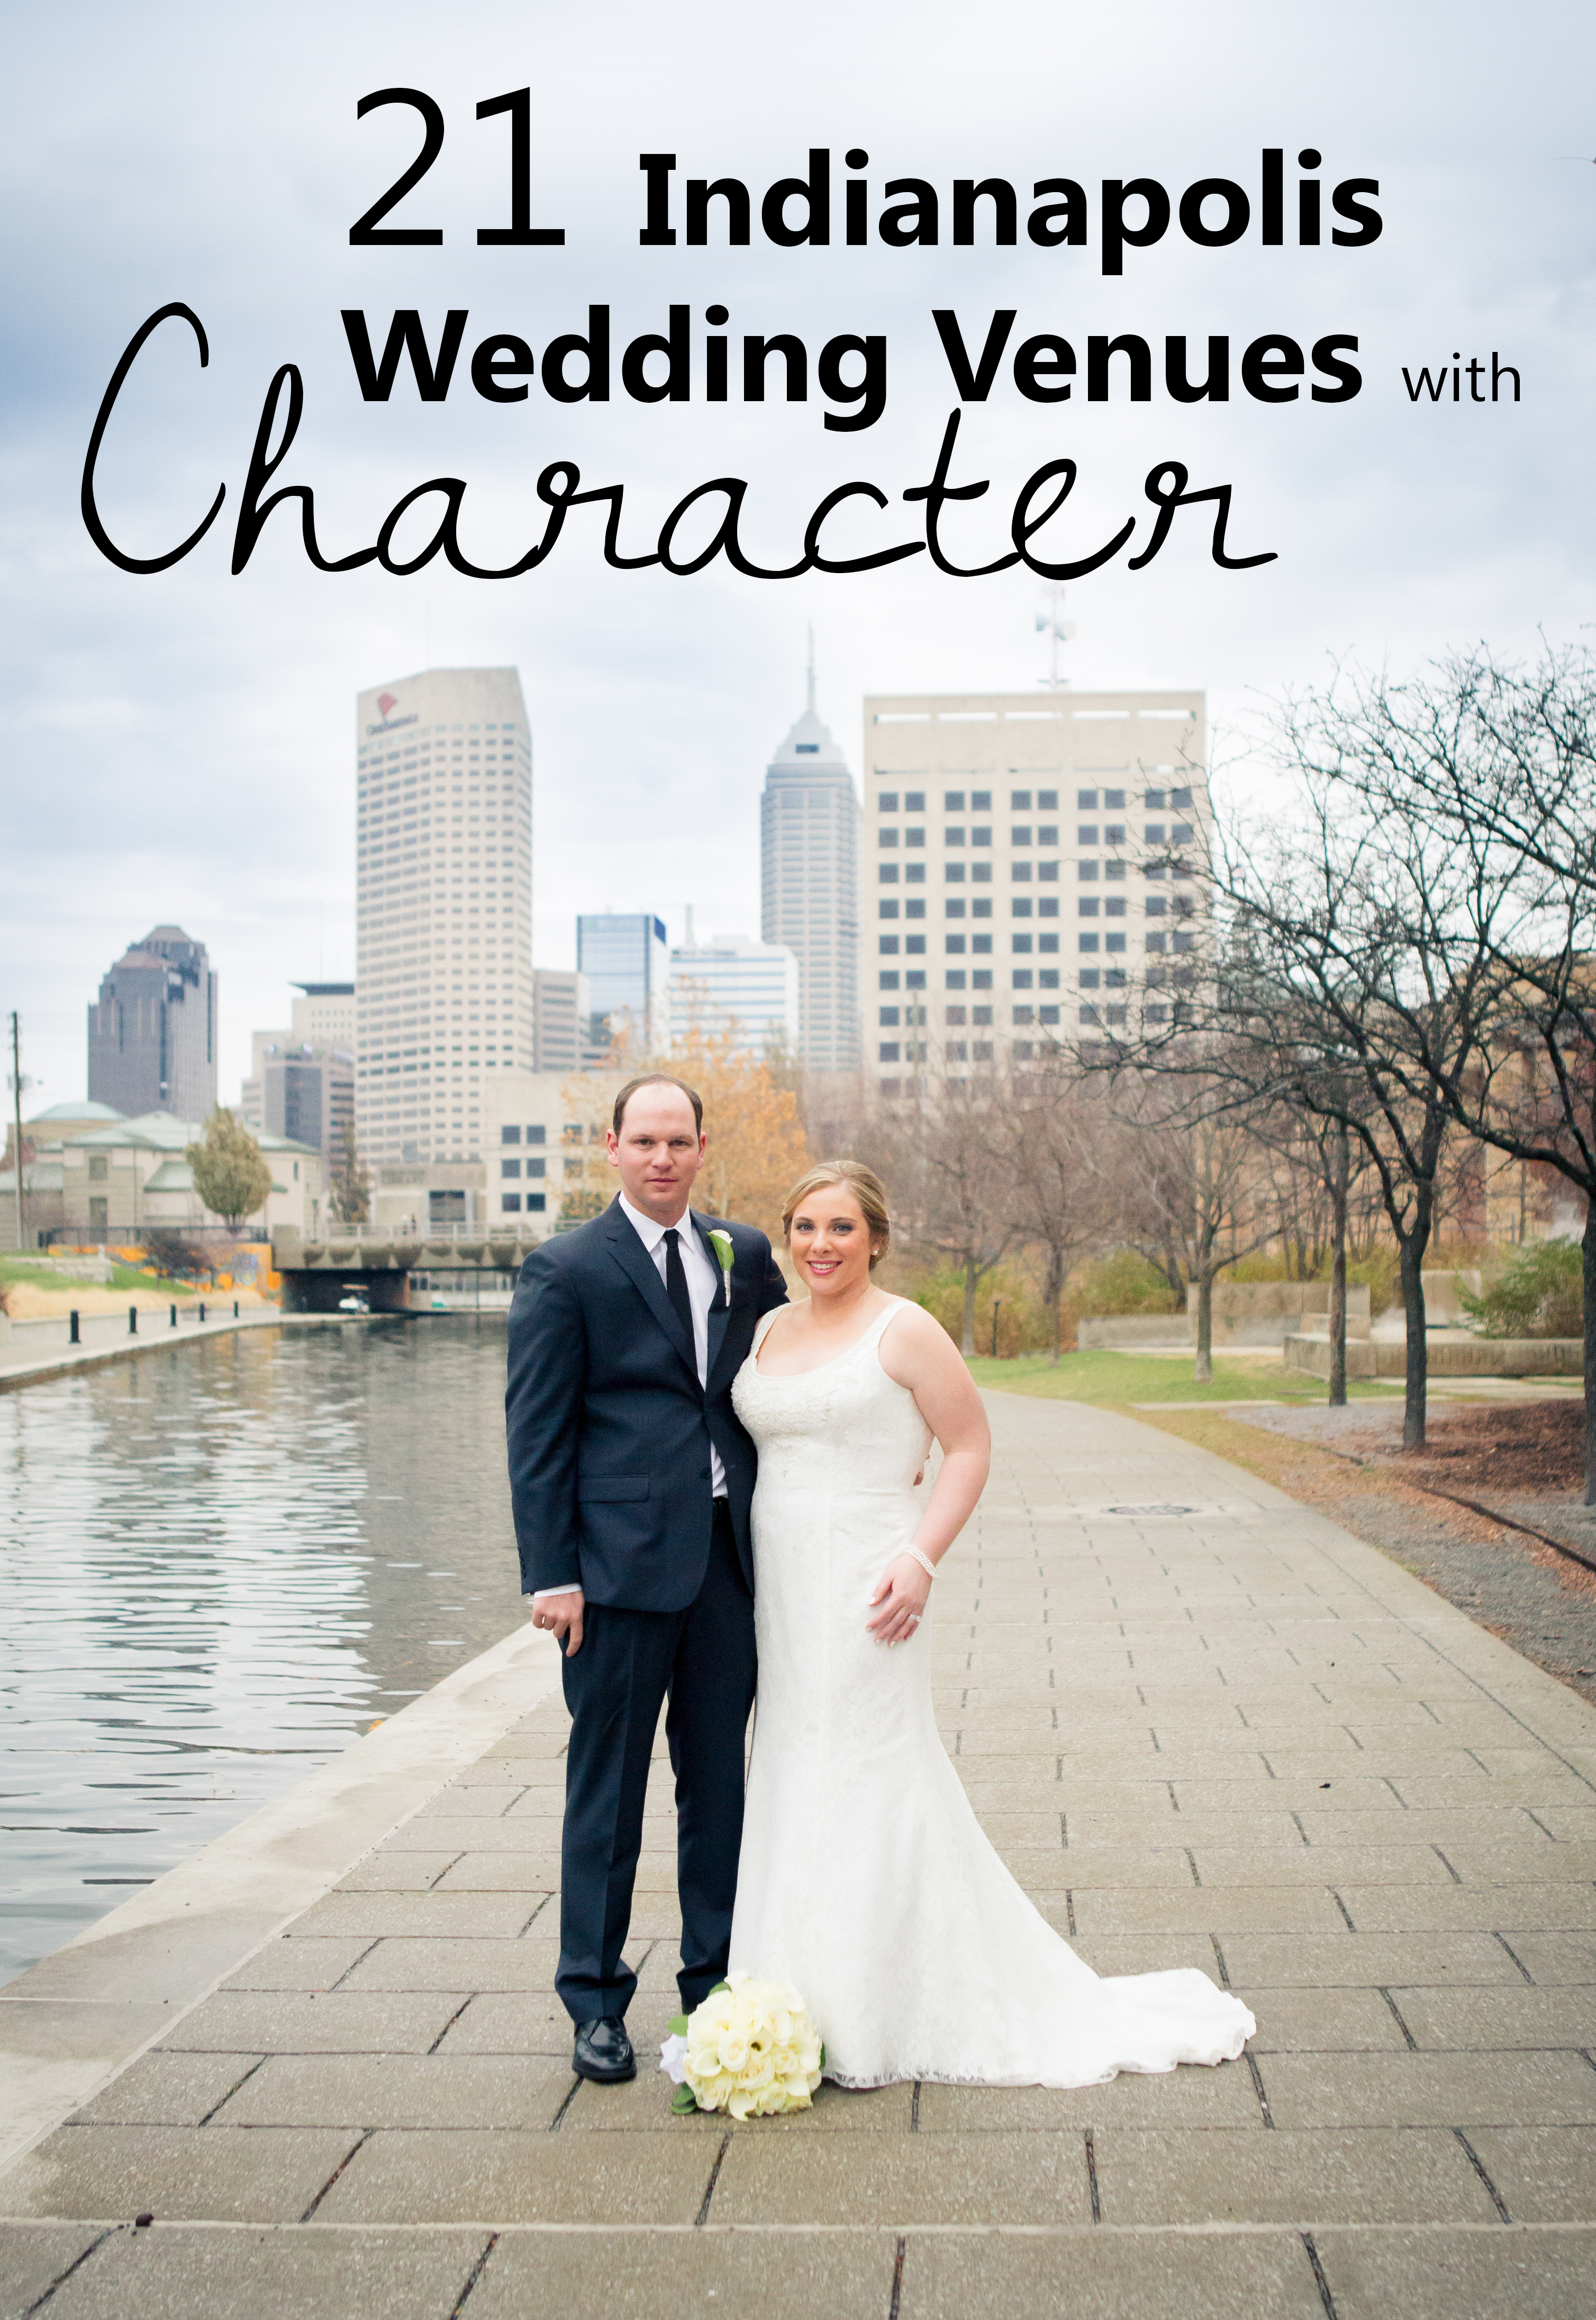 Carrollton World Elegance Cl: 22 Indianapolis Wedding Venues With Character